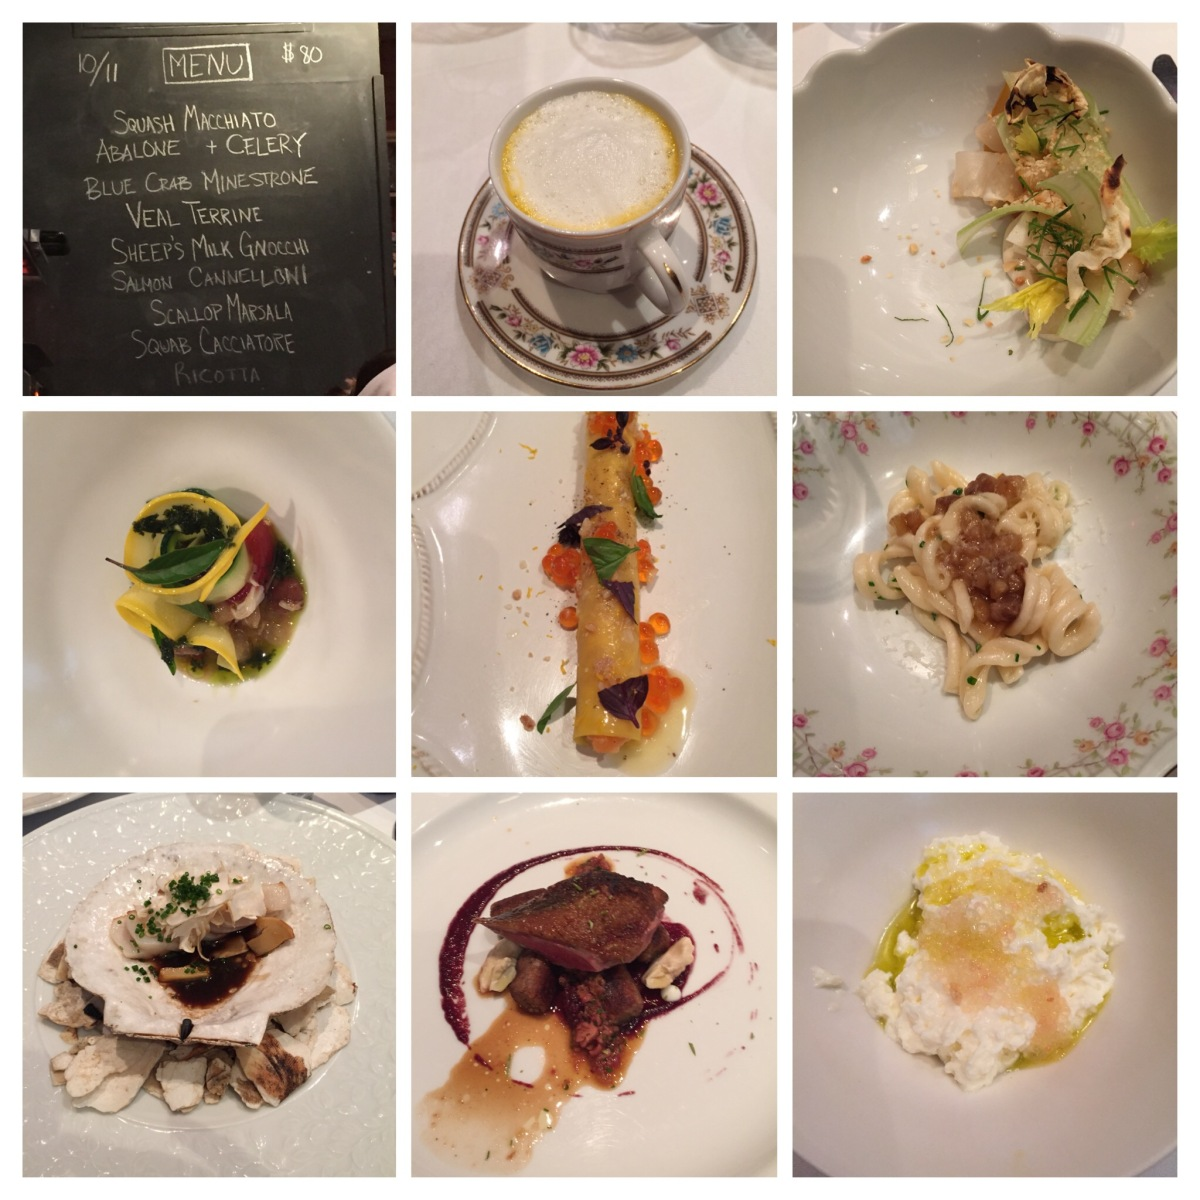 Mind blowing meal at Chef's Table @Brooklyn Fare and other NY food experiences